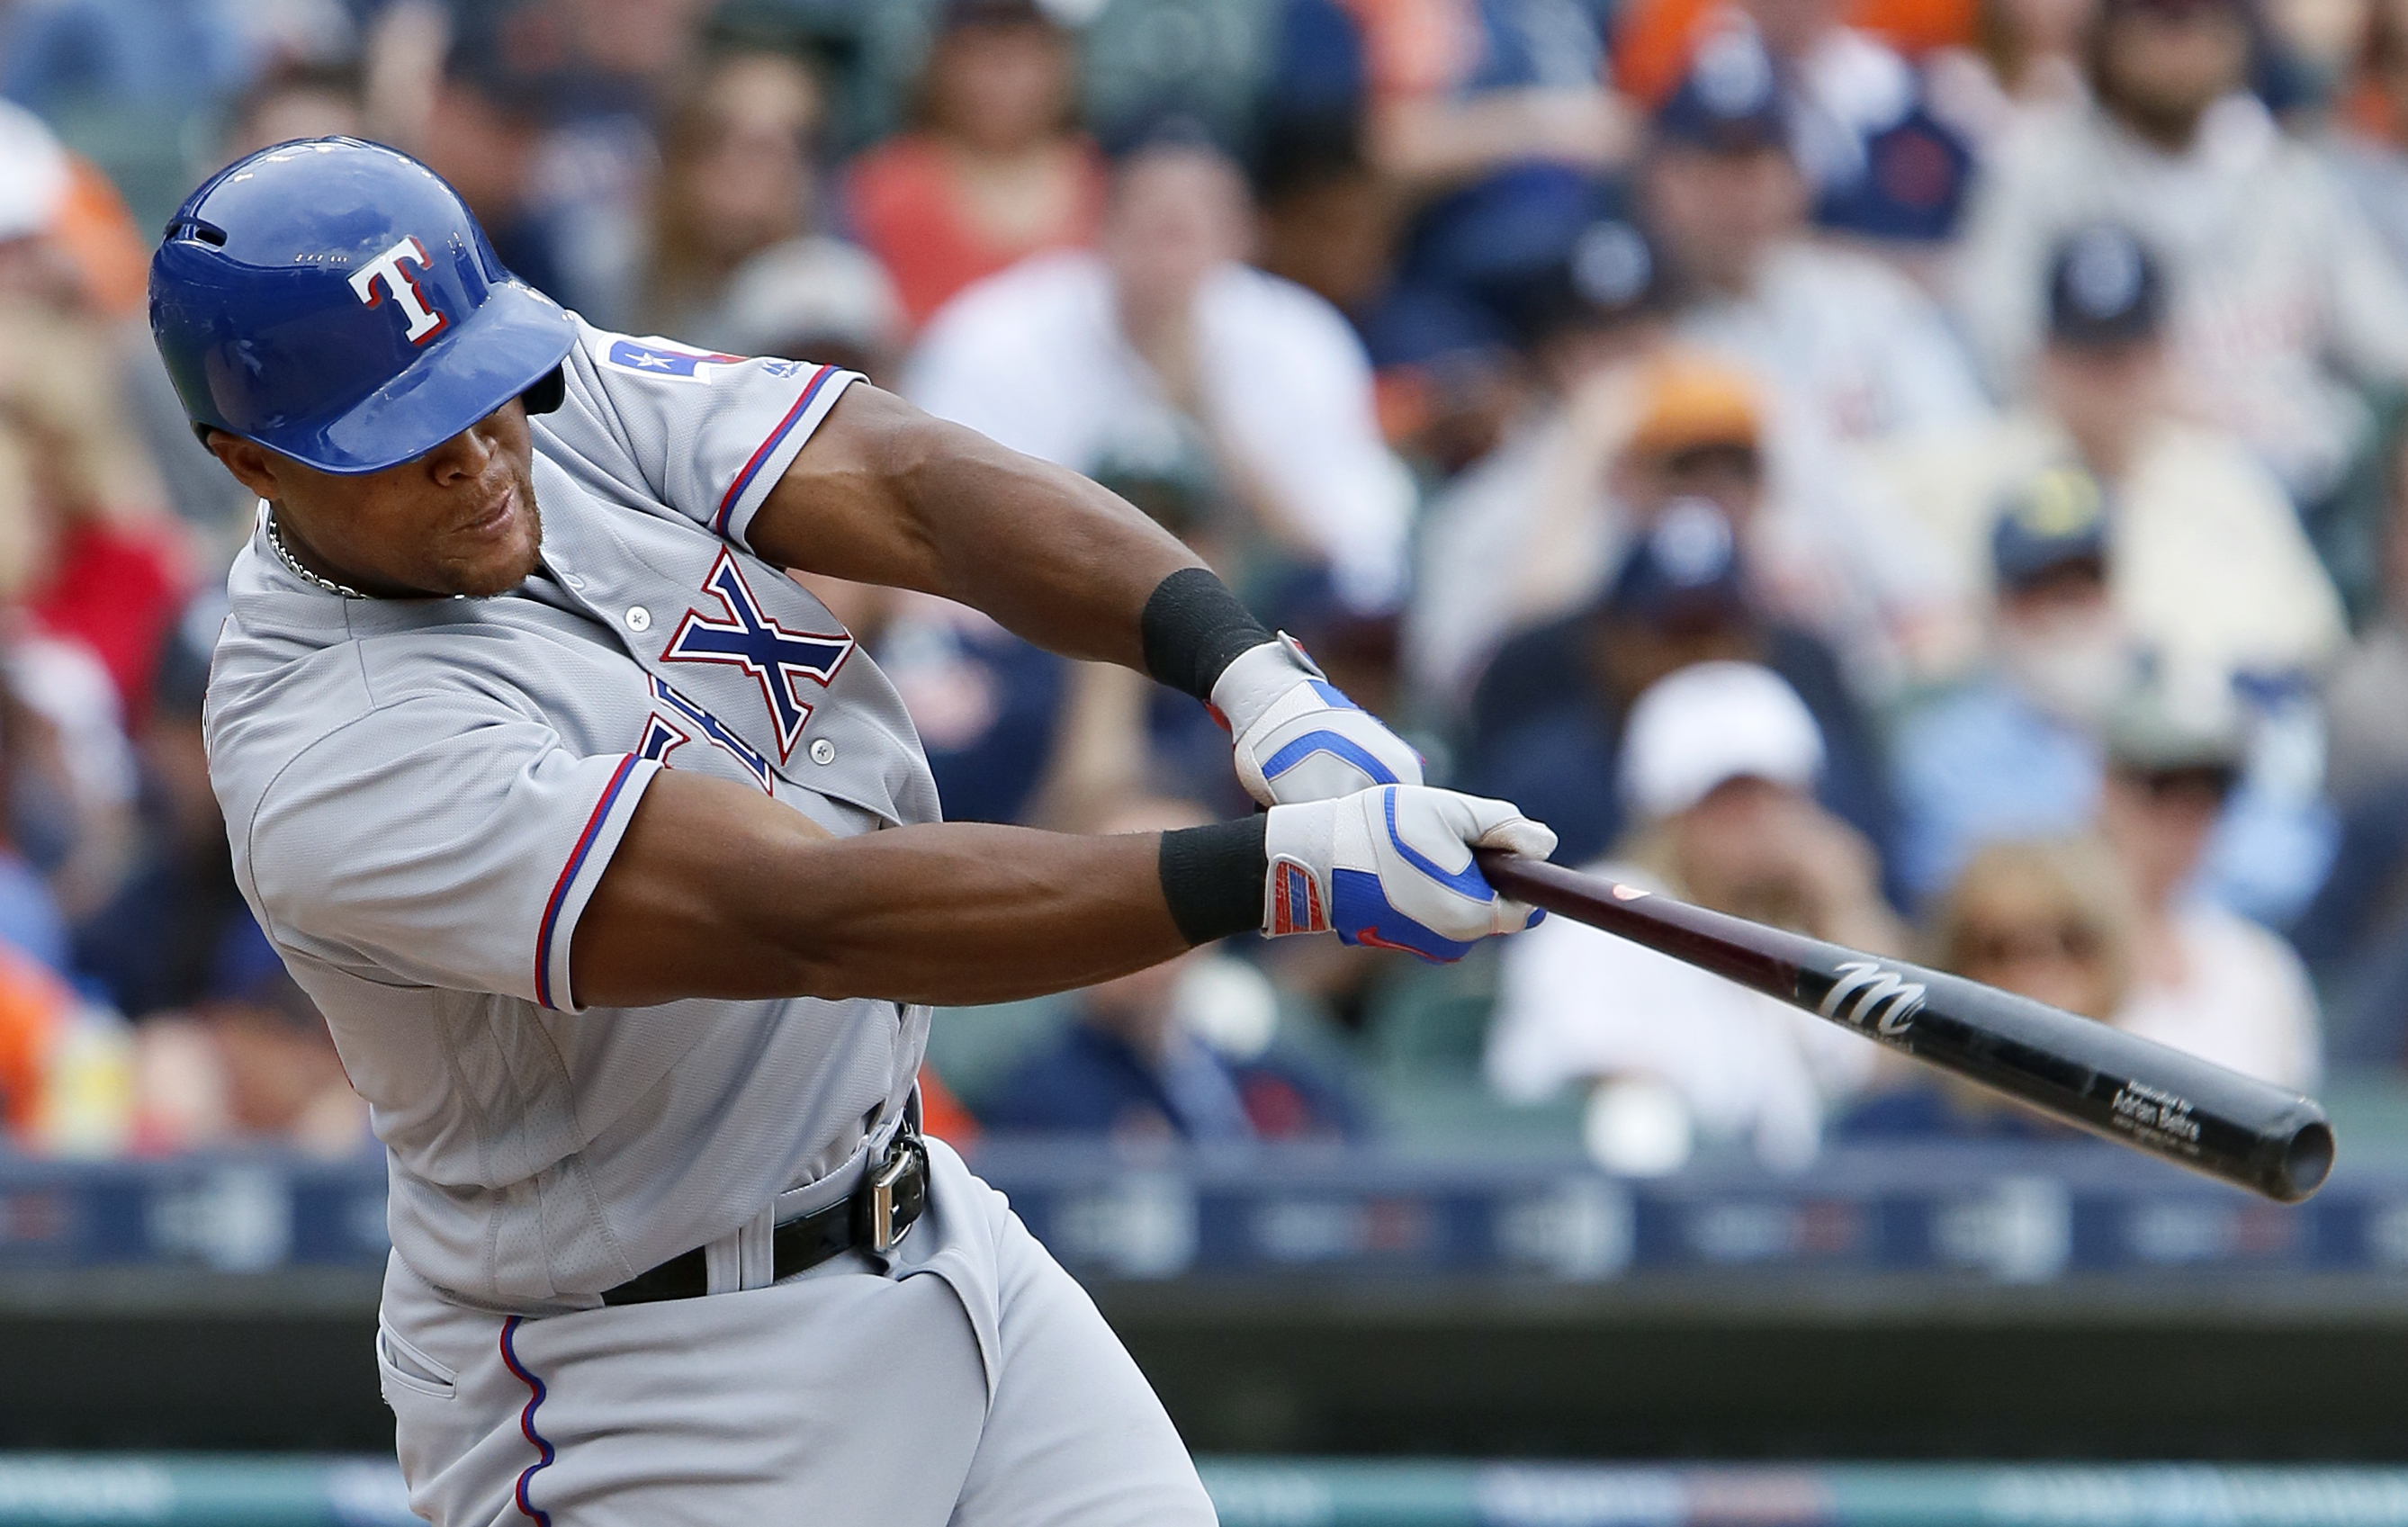 Texas Rangers' Adrian Beltre hits a two-run home run to tie the baseball game against the Detroit Tigers in the sixth inning Saturday, May 7, 2016, in Detroit. (AP Photo/Duane Burleson)